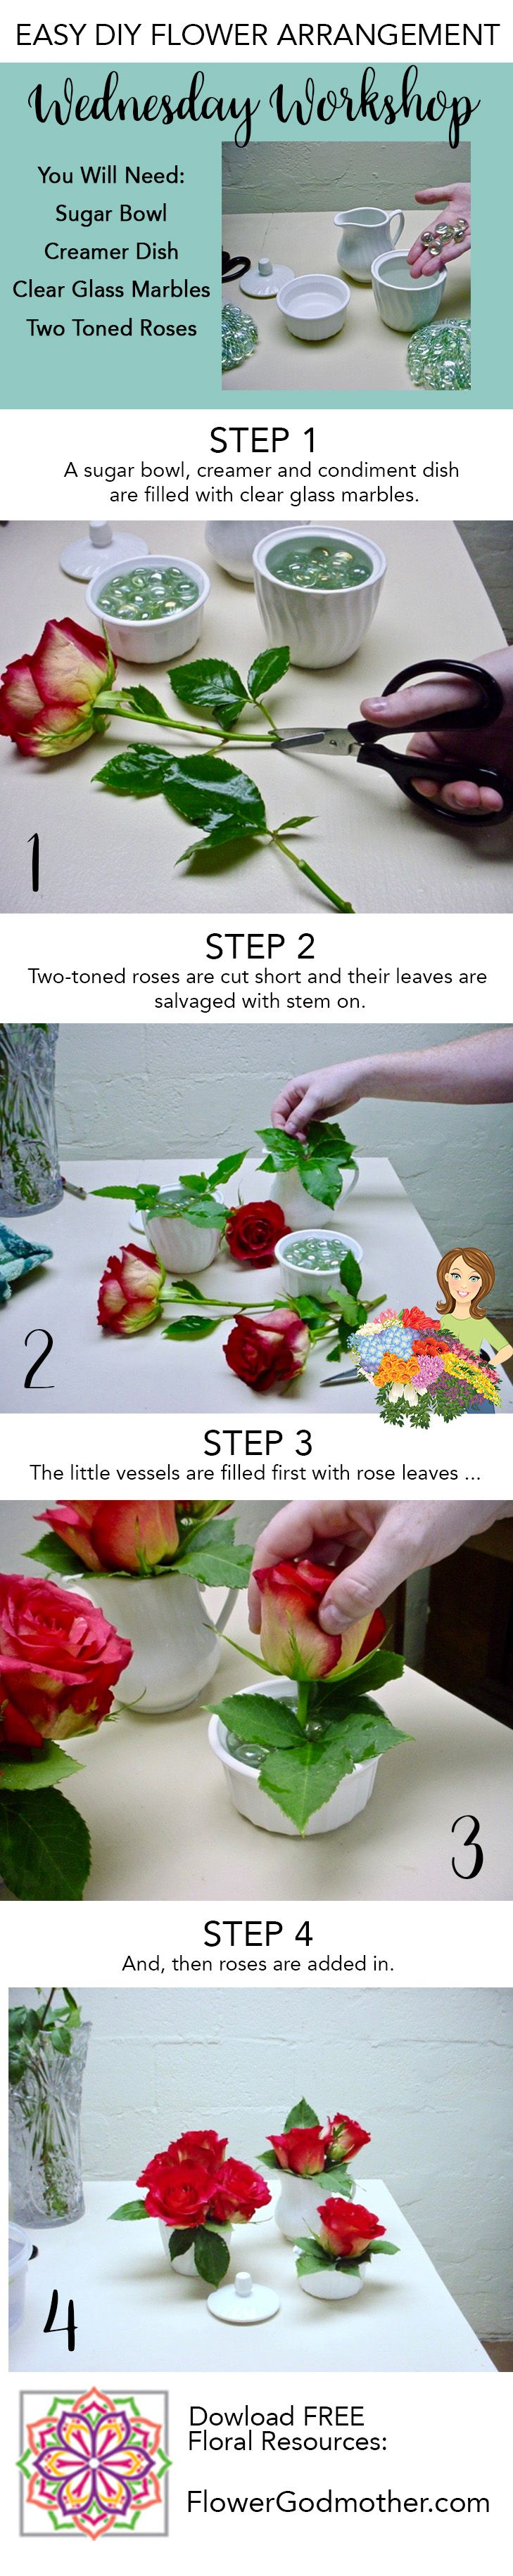 Wednesday Workshop! Cute Kitchen Accents: 1. A sugar bowl, creamer and condiment dish are filled with clear glass marbles. 2. Two-toned roses are cut short and their leaves are salvaged with stem on. 3. The little vessels are filled first with rose leaves ... 4. And, then roses are added in.     #diy #diyflowers #autumn #fall #flowerarrangement